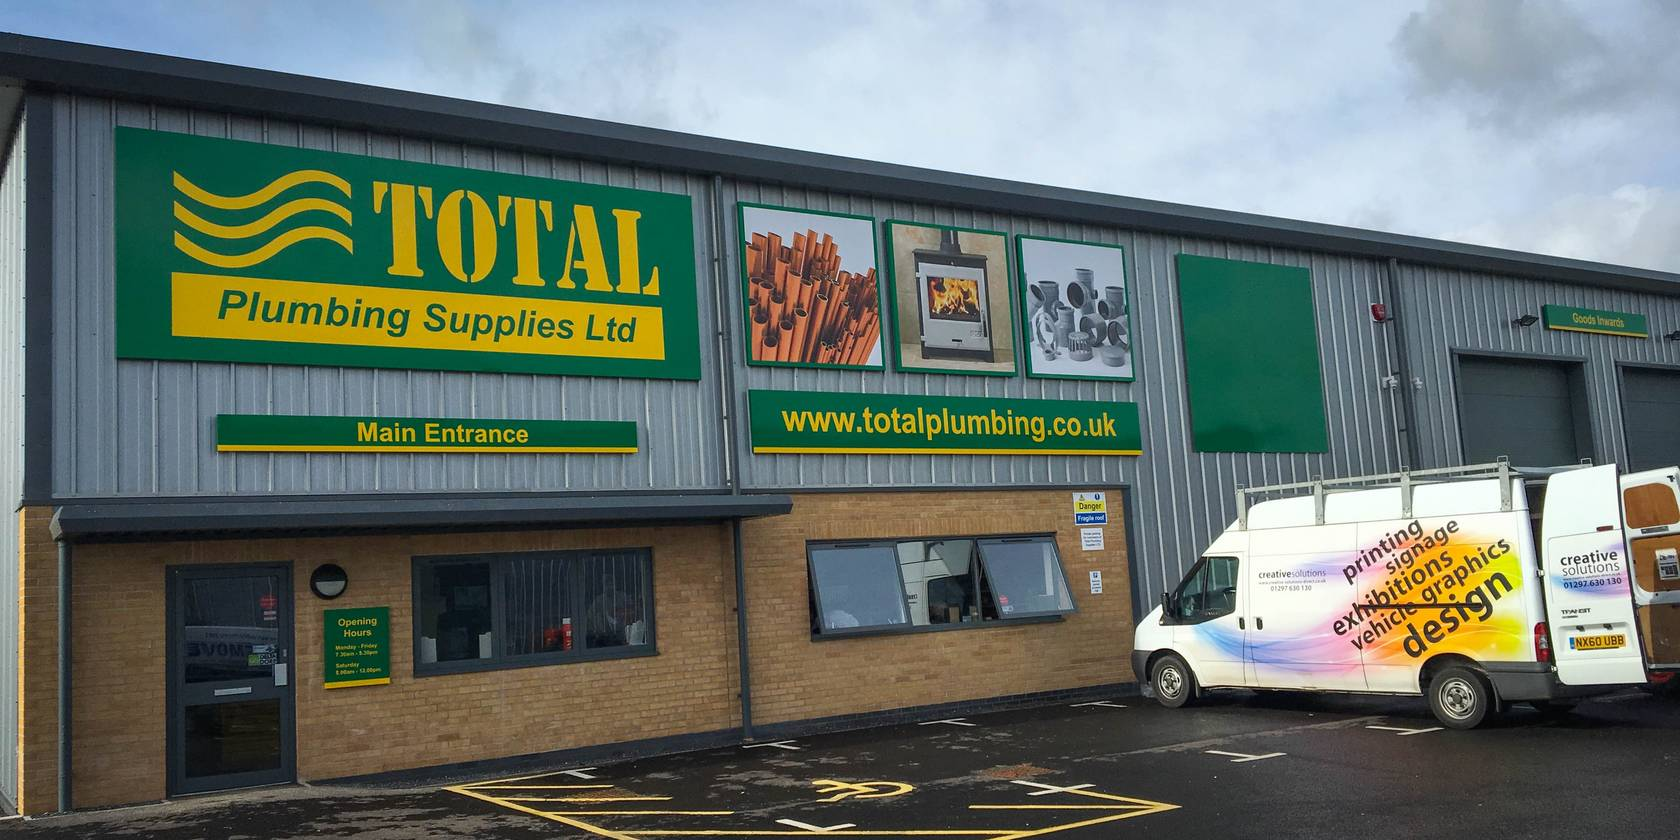 Total Plumbing Supplies Frome Signage